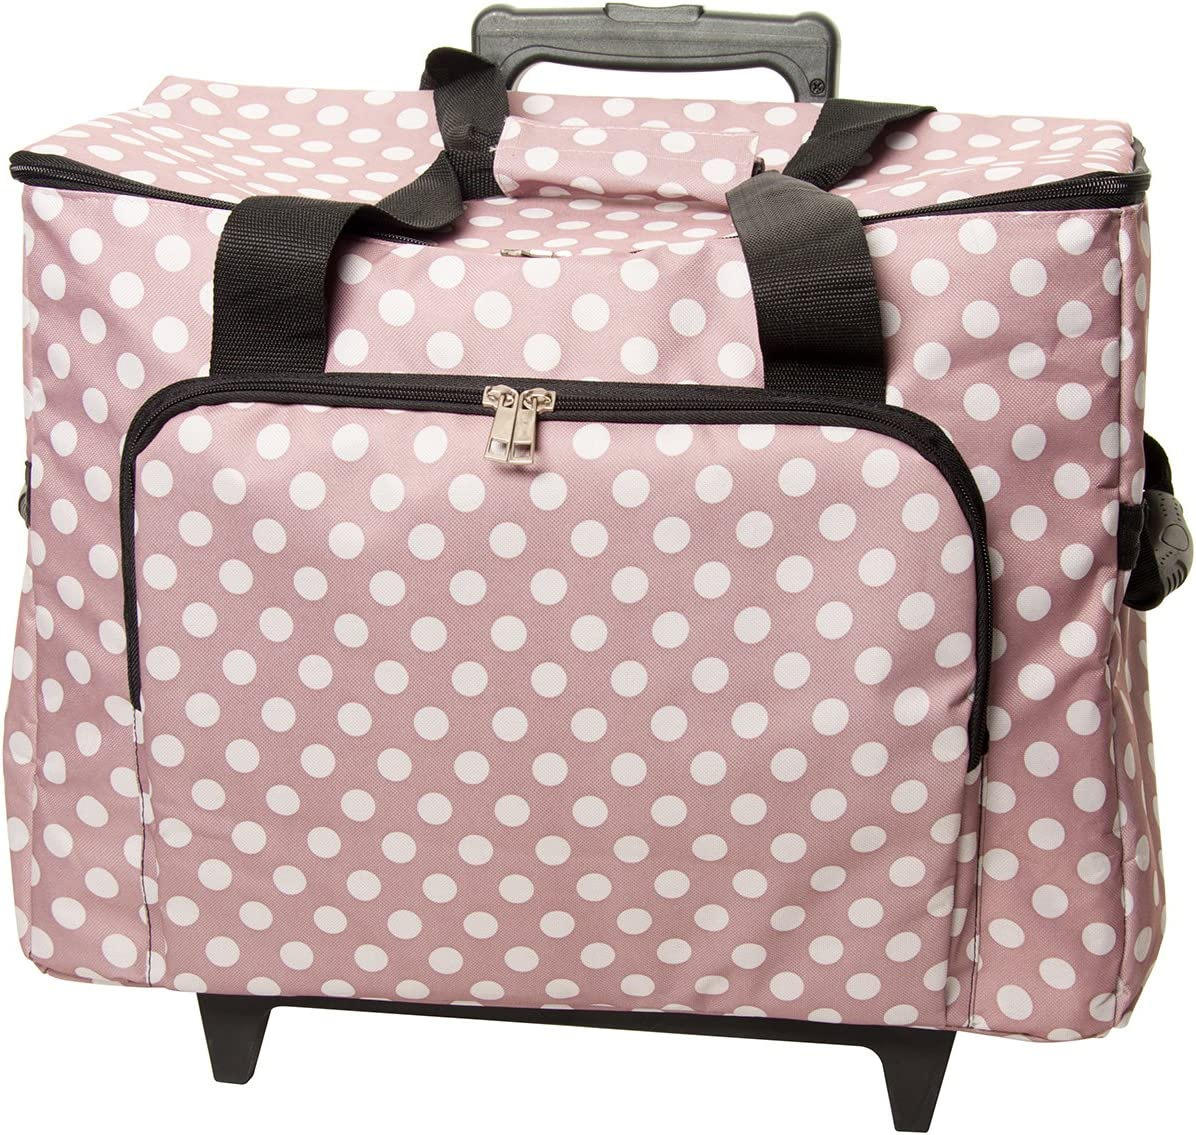 ~ Black ~ Hobbygift Premium Sewing Machine Bag and Additional Bag Sewing Machine Trolley with Two Detachable Bags